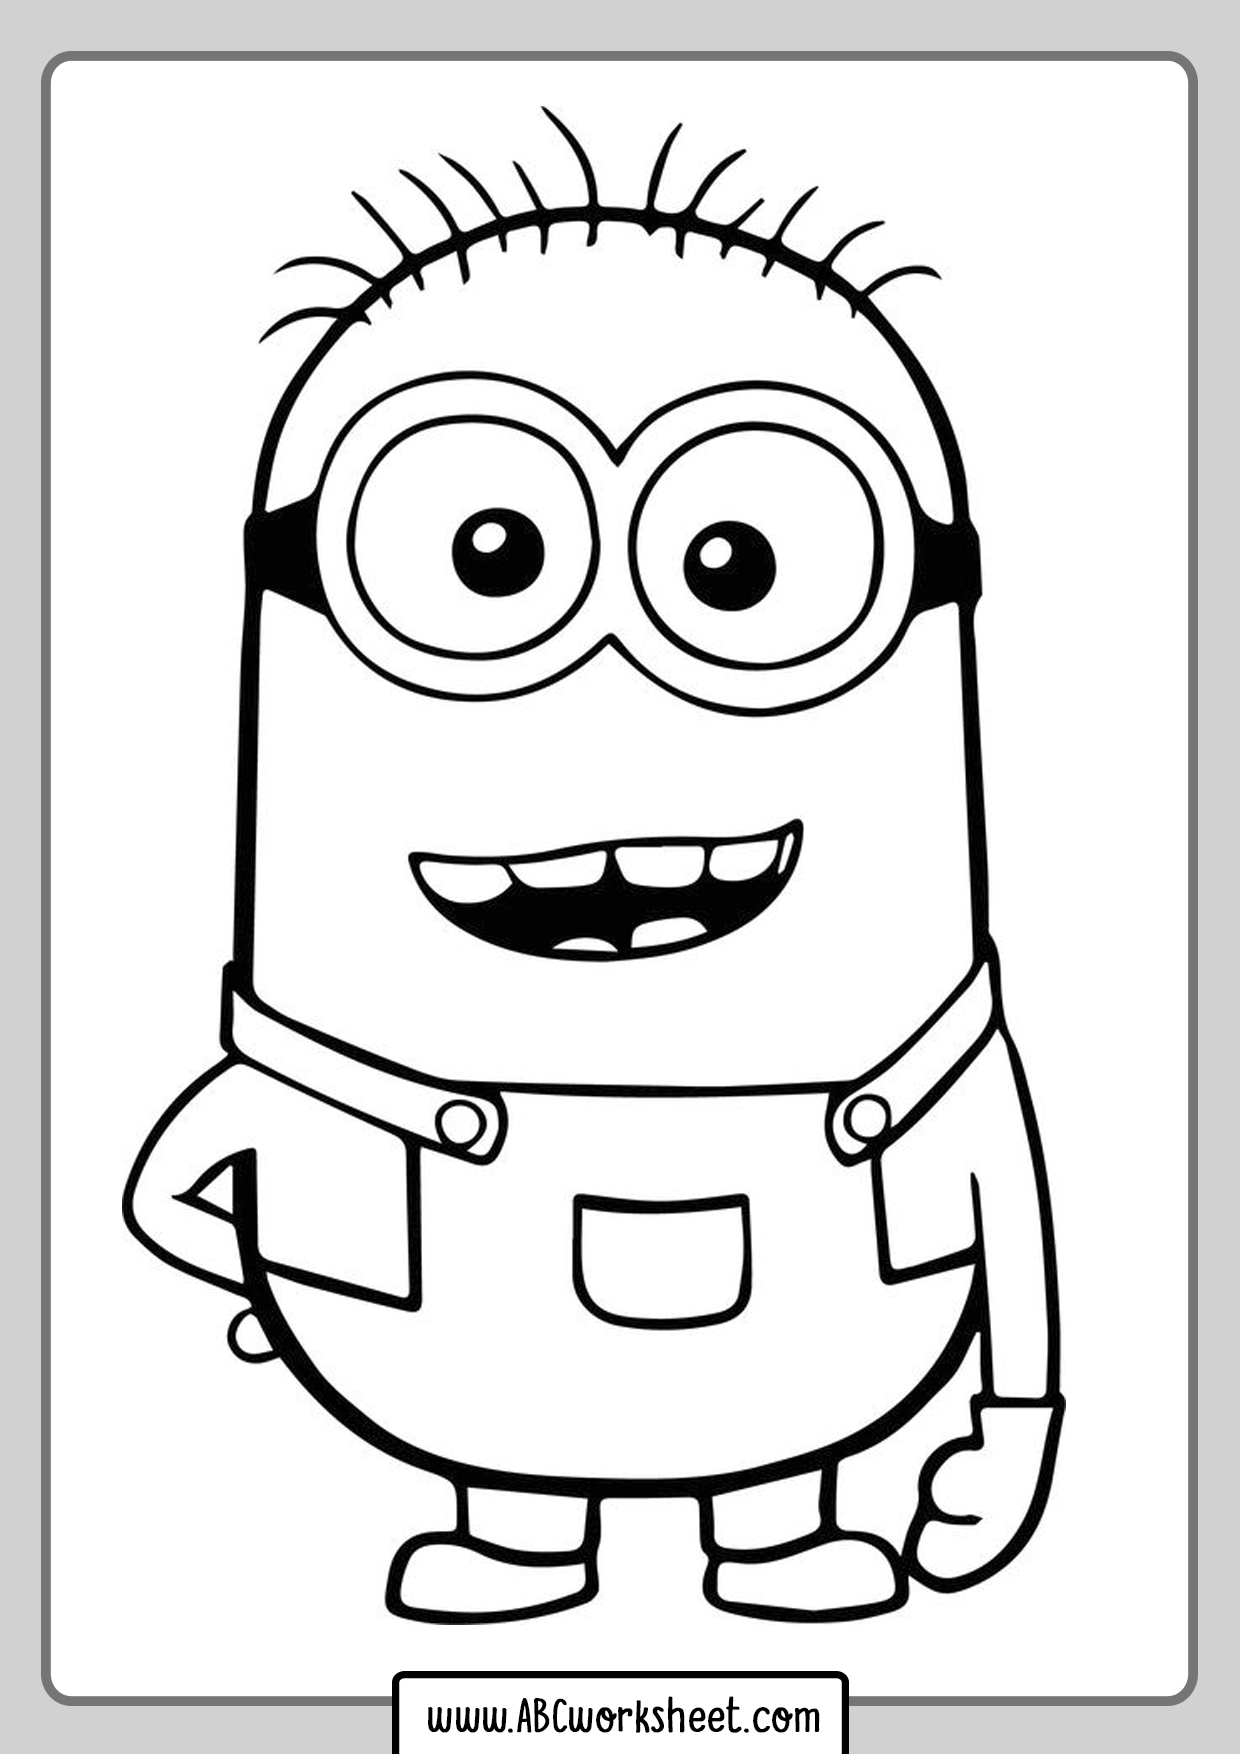 Coloring Minions Coloring Pages for Kids - ABC Worksheet